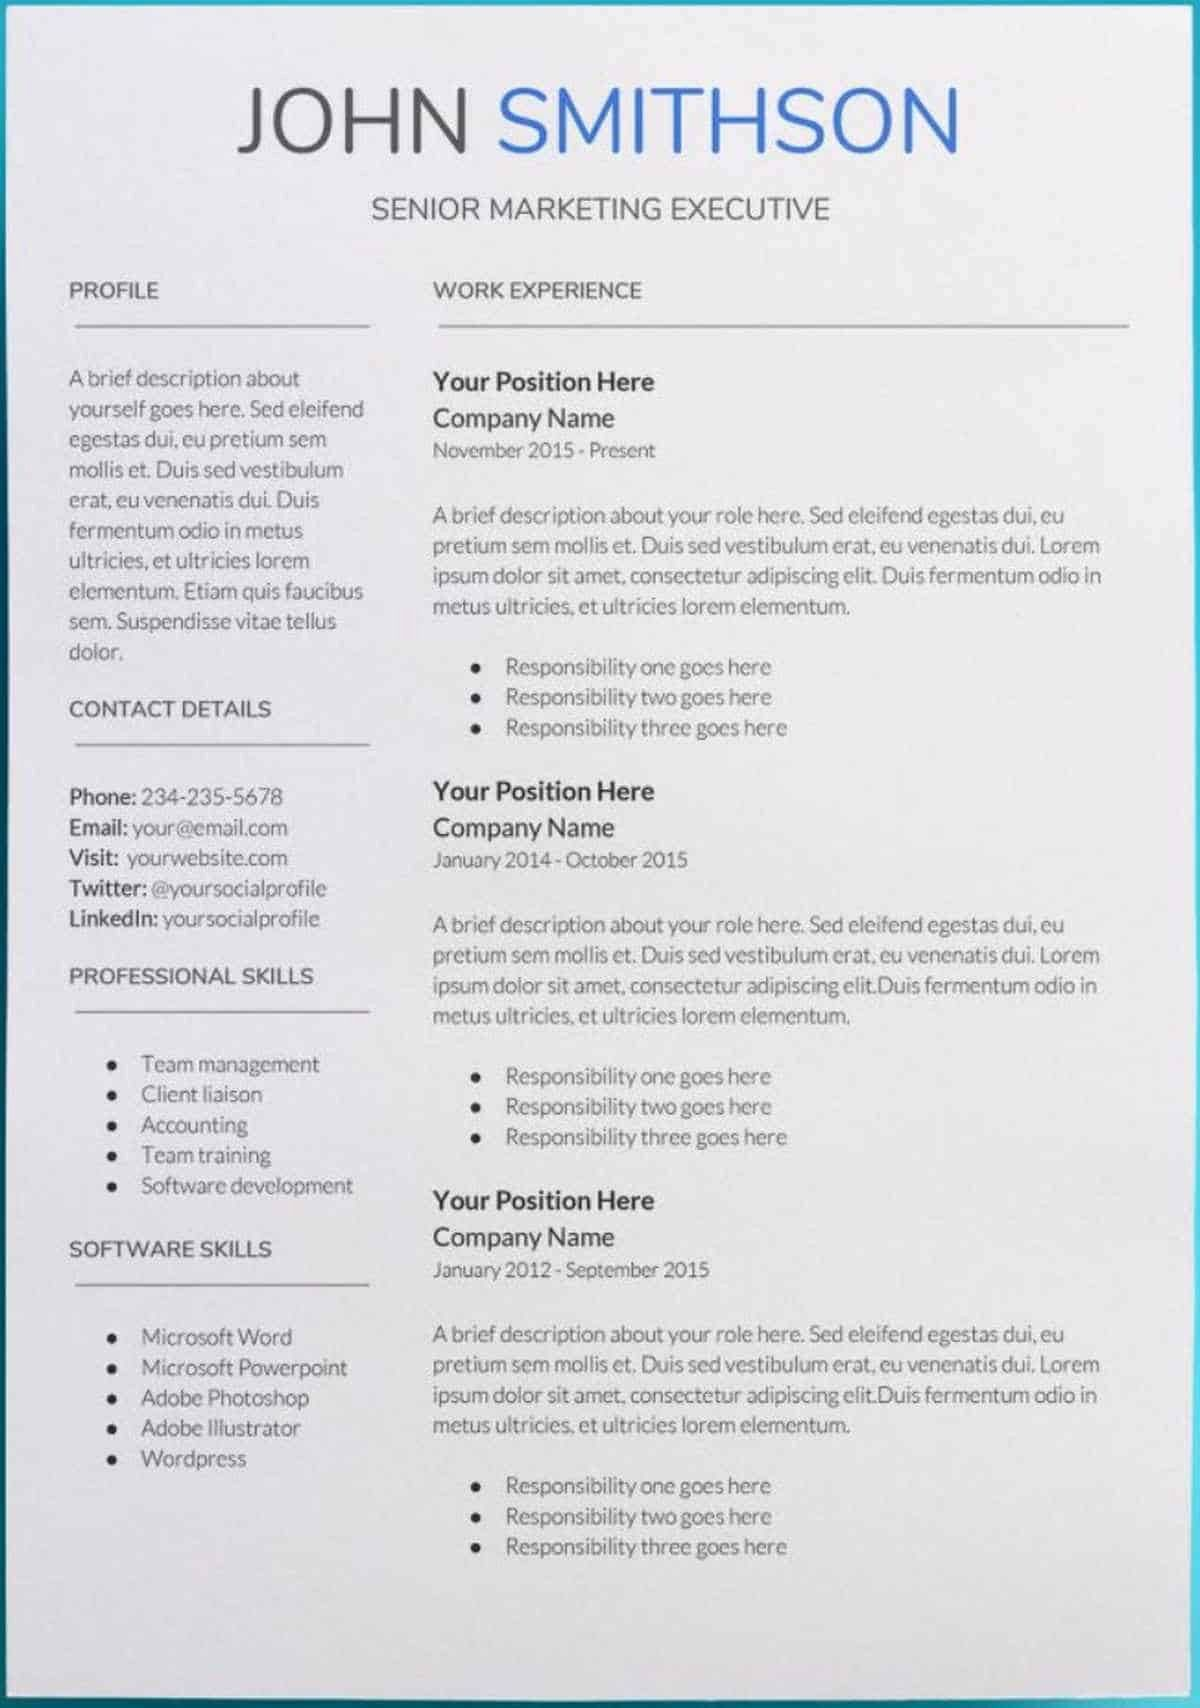 40 Resume with Picture Template in 2020 Free resume